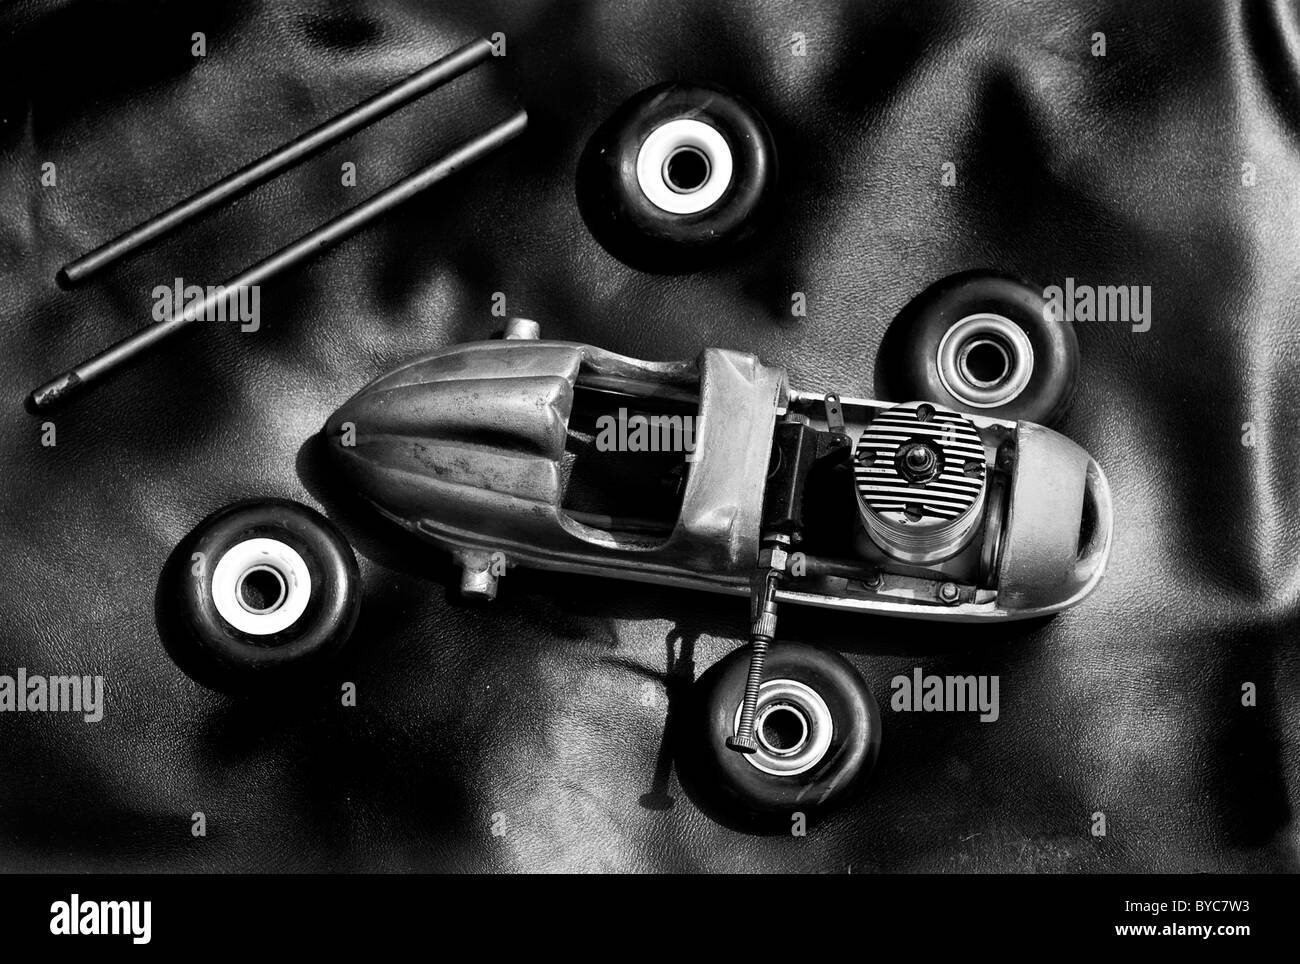 Old metal disassembled model car toy - Stock Image